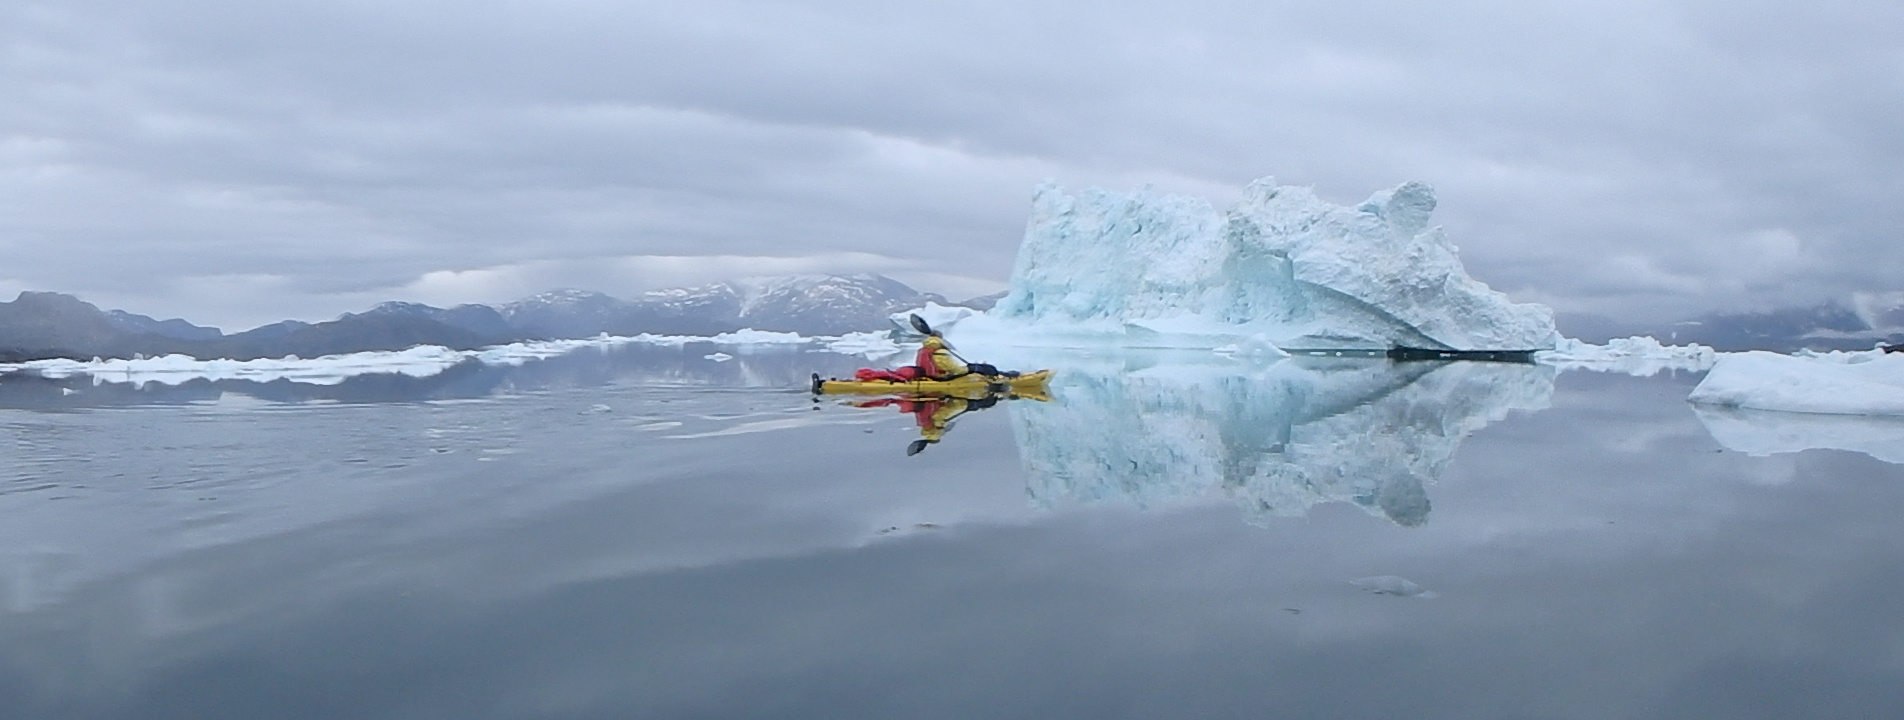 With mirror like seas which are not uncommon in Greenland.